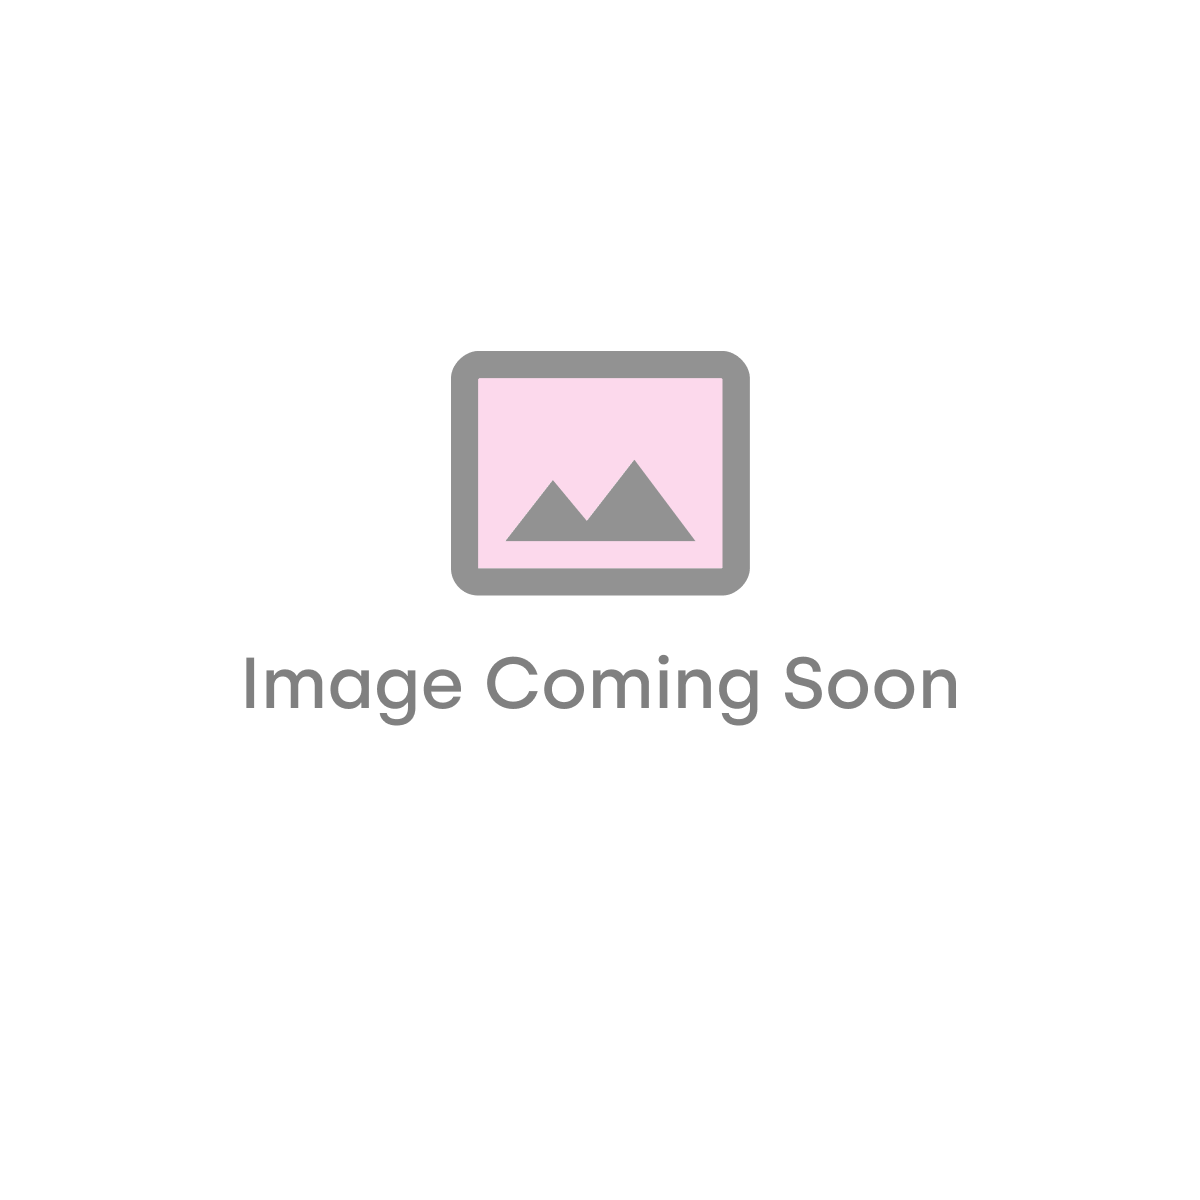 Kiimat Aqua 700mm Wetroom Panel - Mirror Finish (18720)